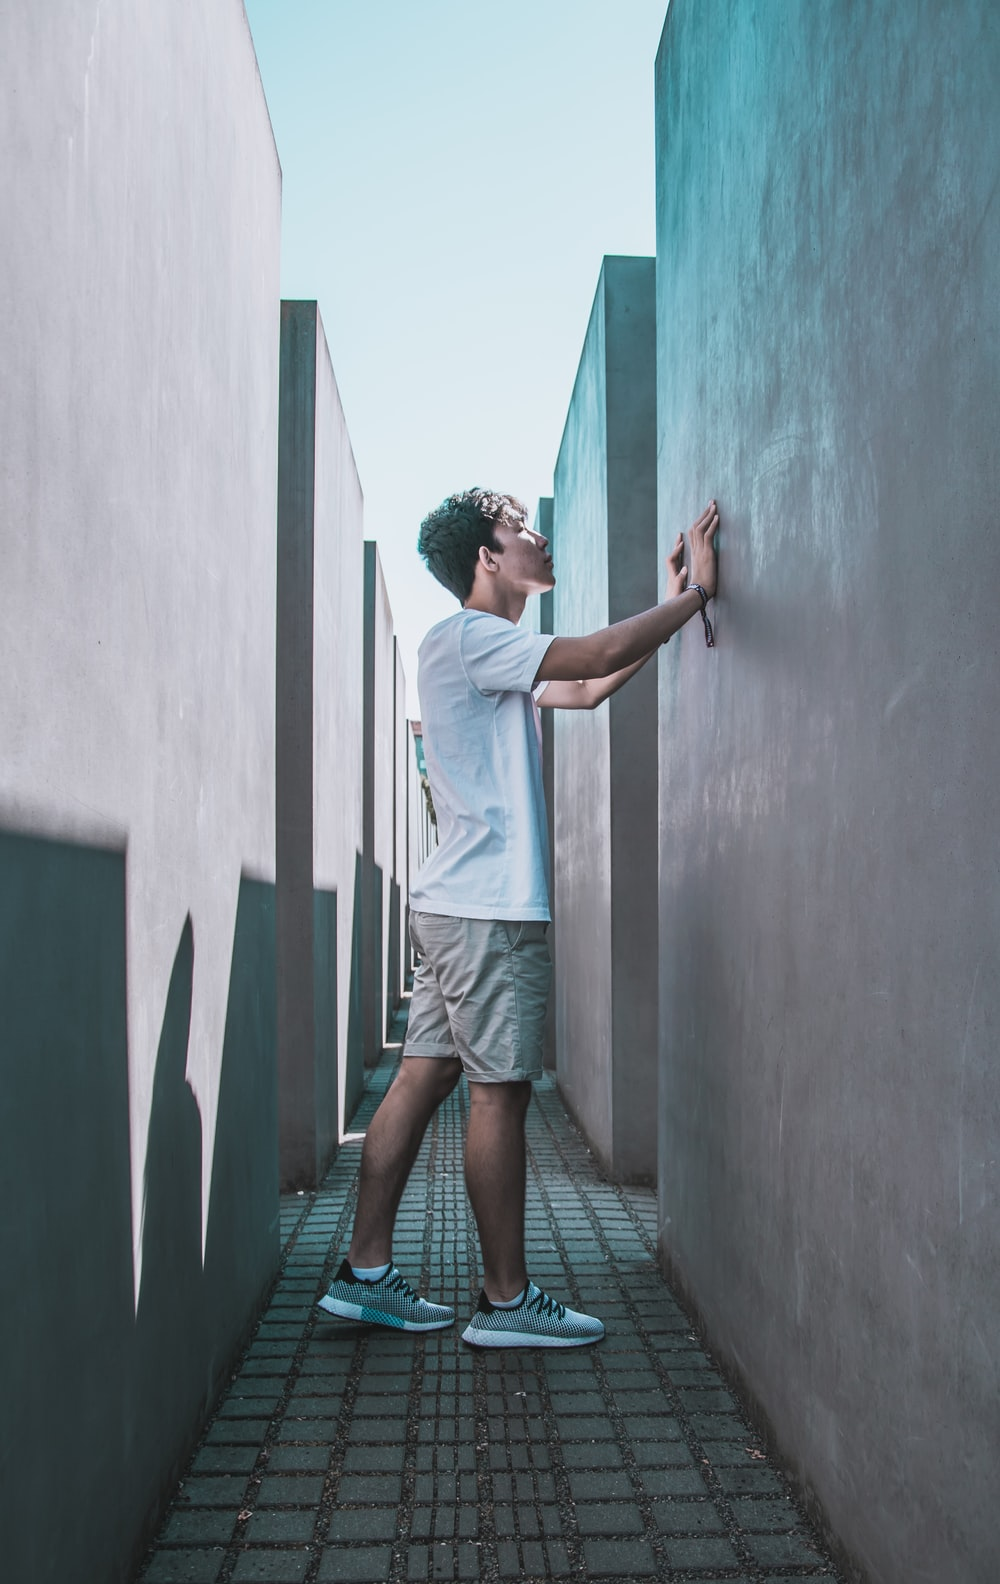 man standing and touching wall